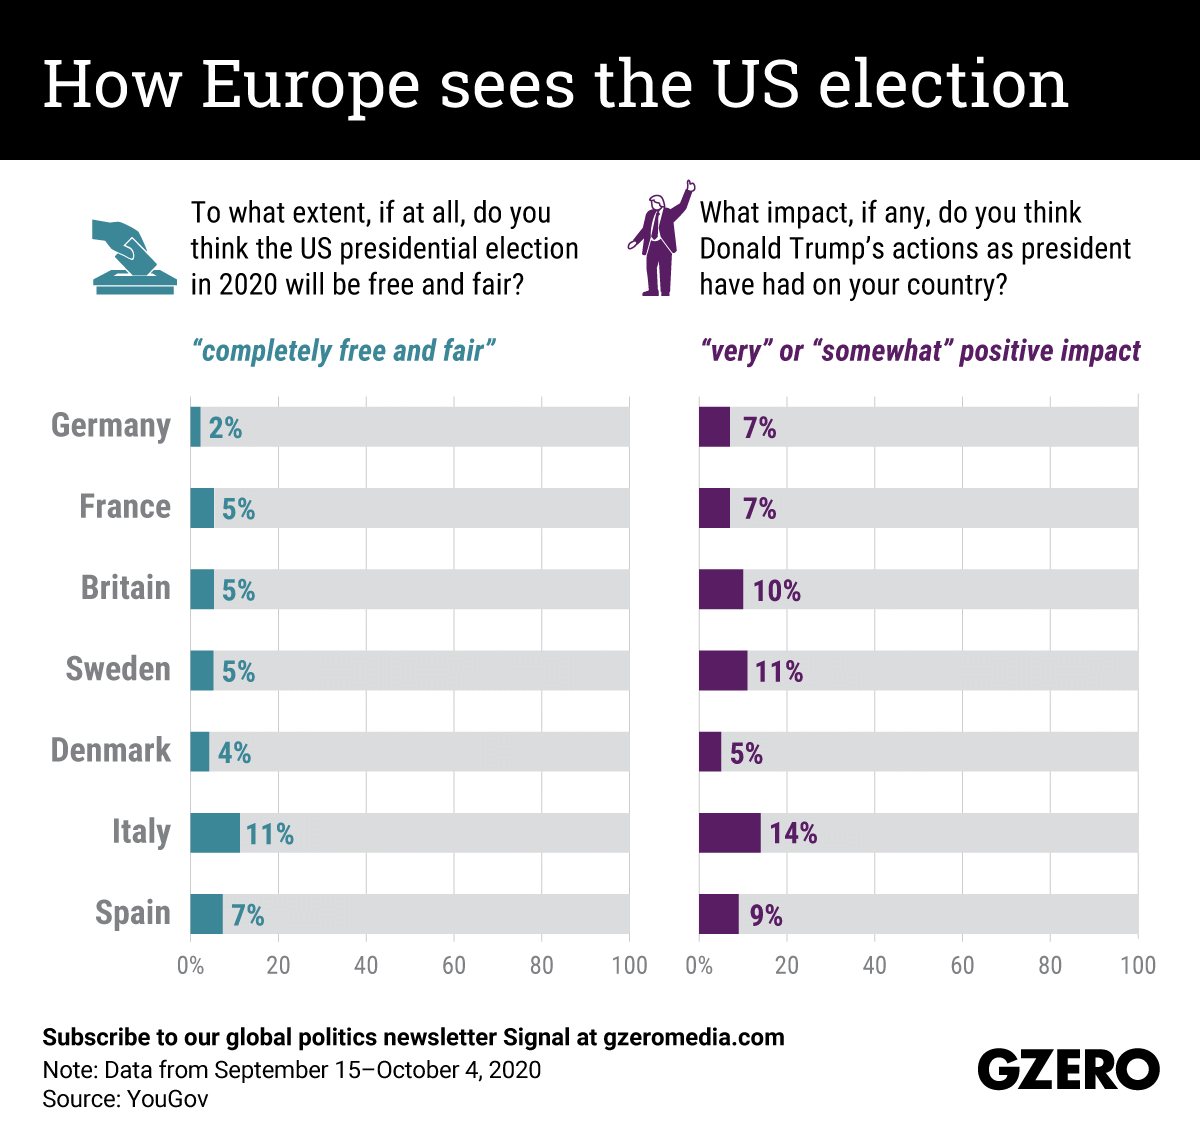 The Graphic Truth: How Europe sees the US election